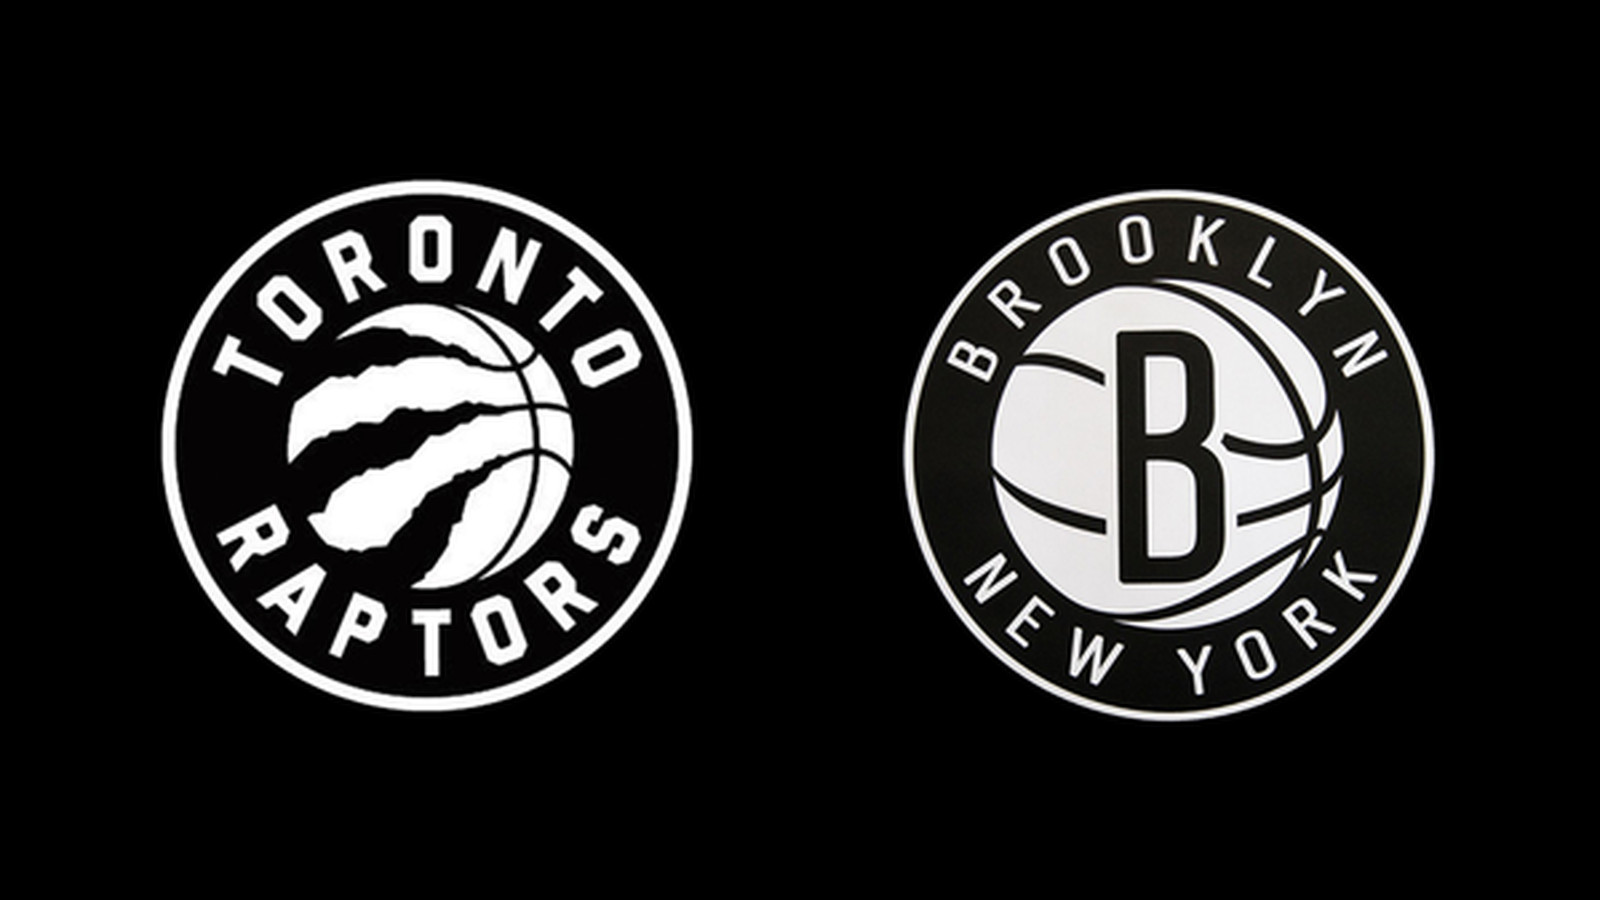 Brooklyn Nets Fans Does The New Toronto Raptors Logo Look Familiar To You Netsdaily